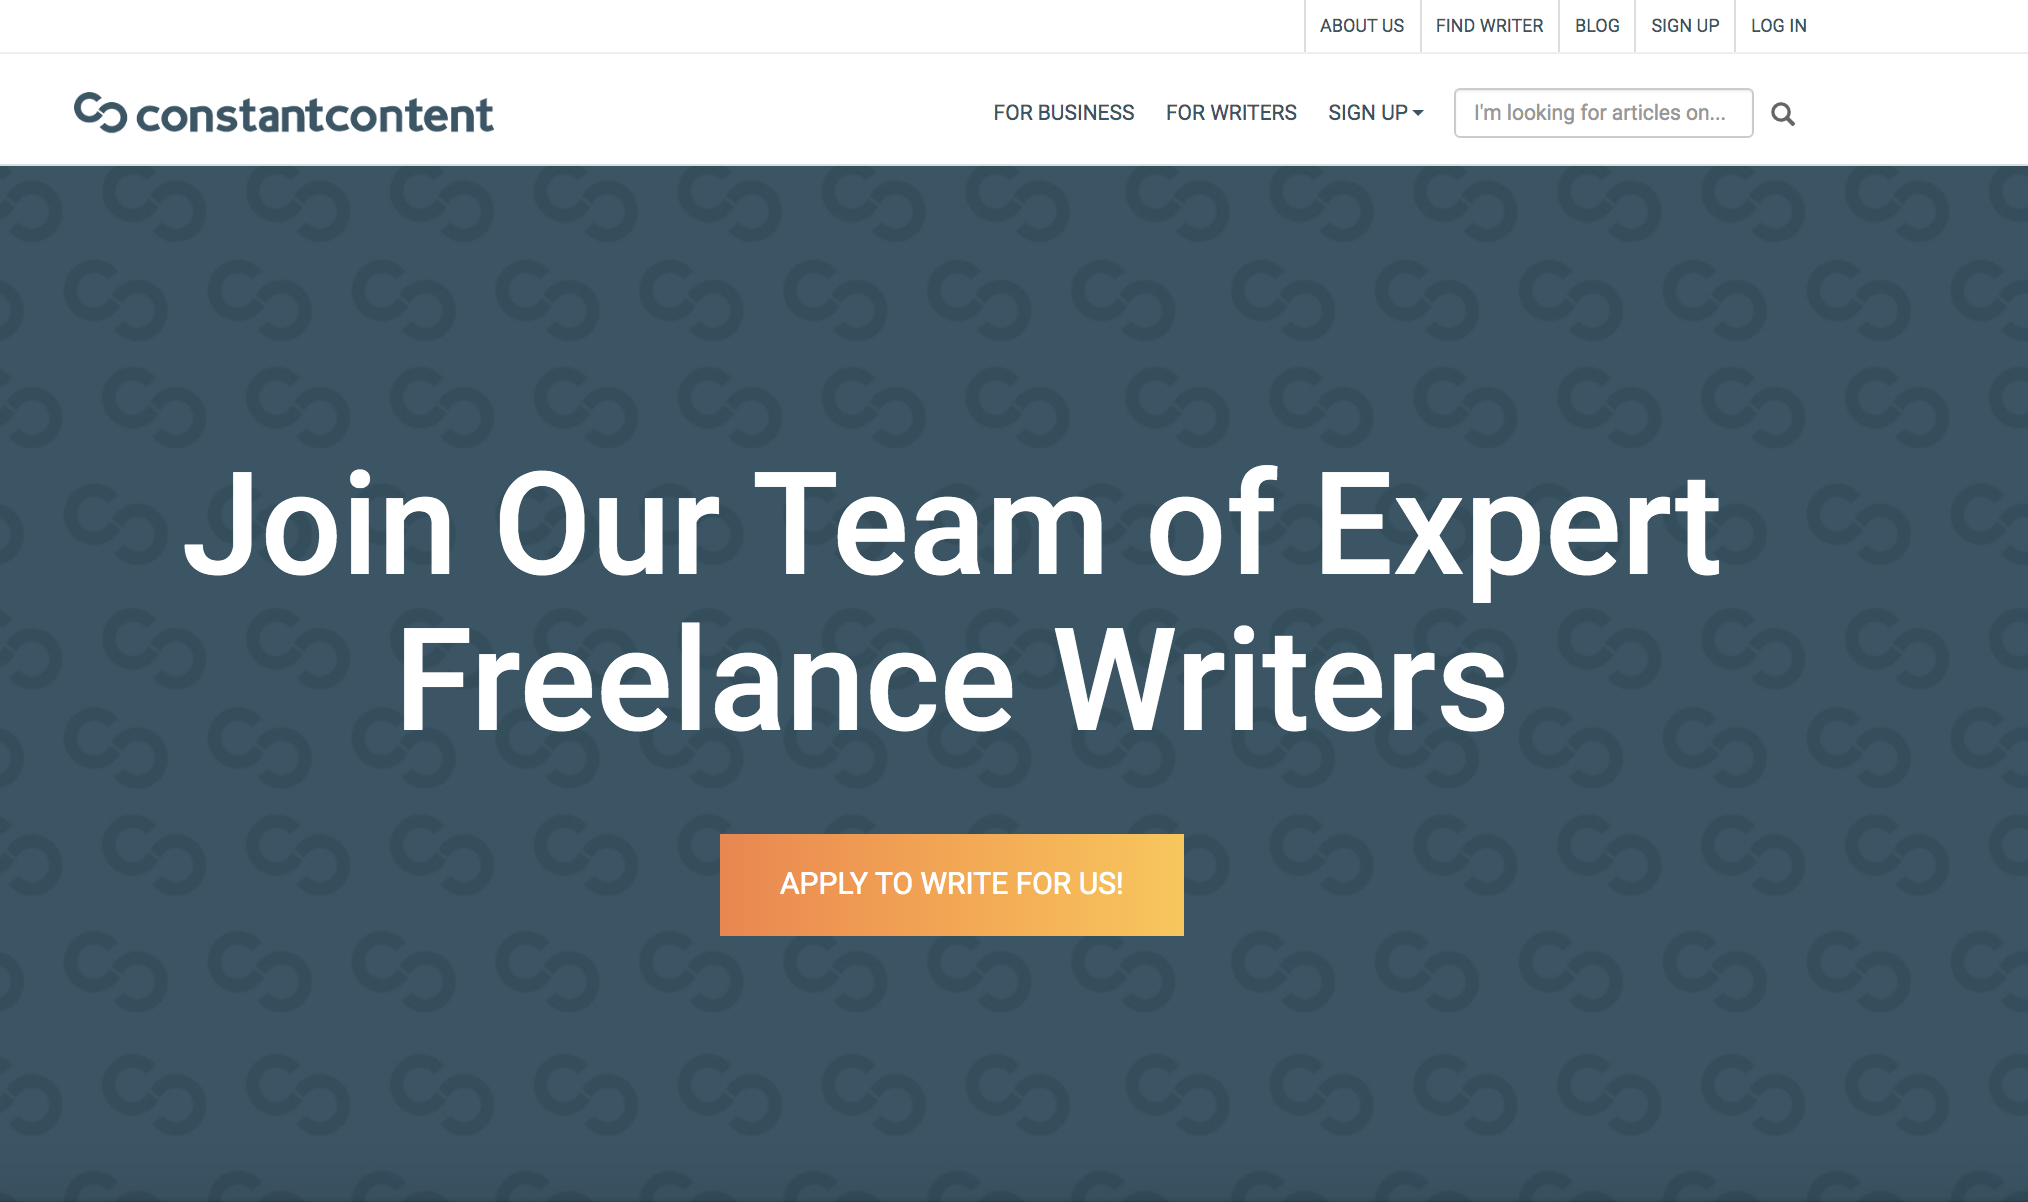 writing jobs sites - constant content